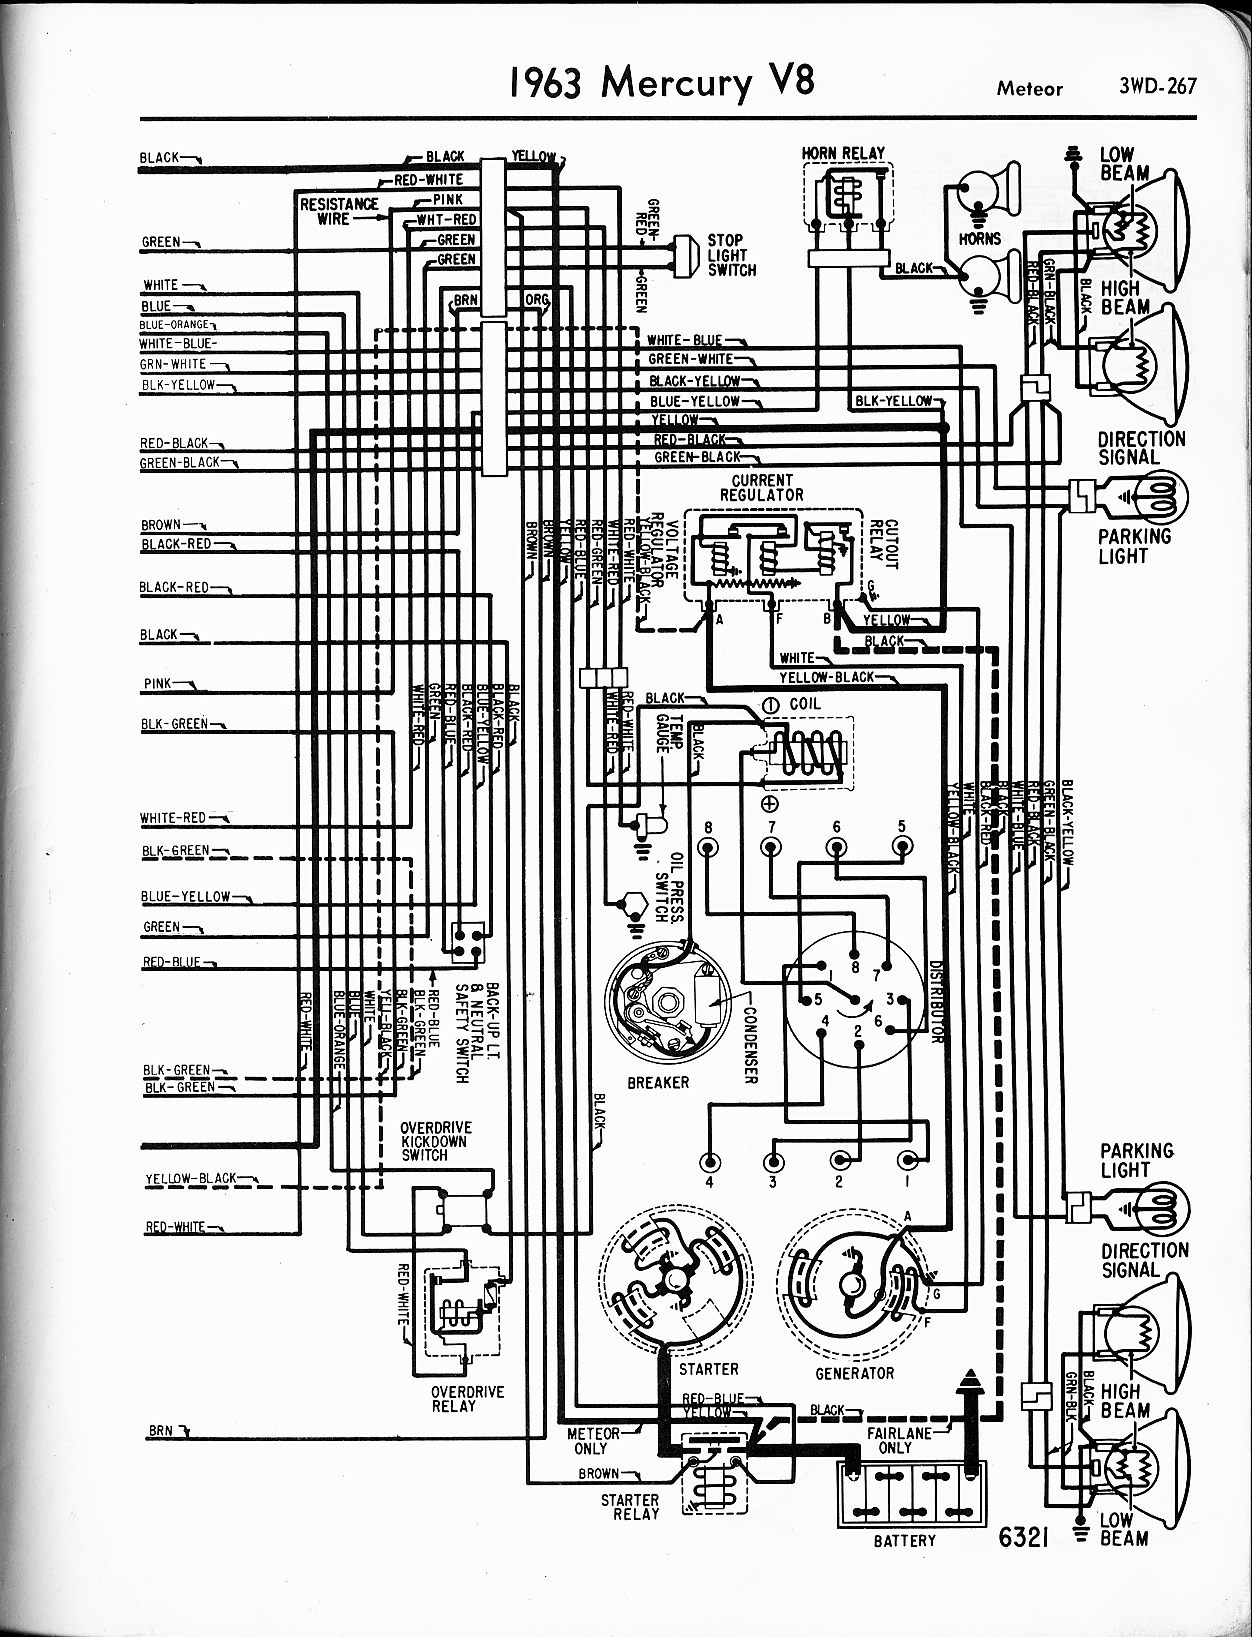 File Tesla coil 3 as well Fuel Injection Wiring Diagram 2003 additionally Mercruiser 470 Engine Wiring Diagram as well Toyota Corolla 1996 Toyota Corolla Shifting likewise 1153863 Ignition Module. on ignition coil circuit diagram